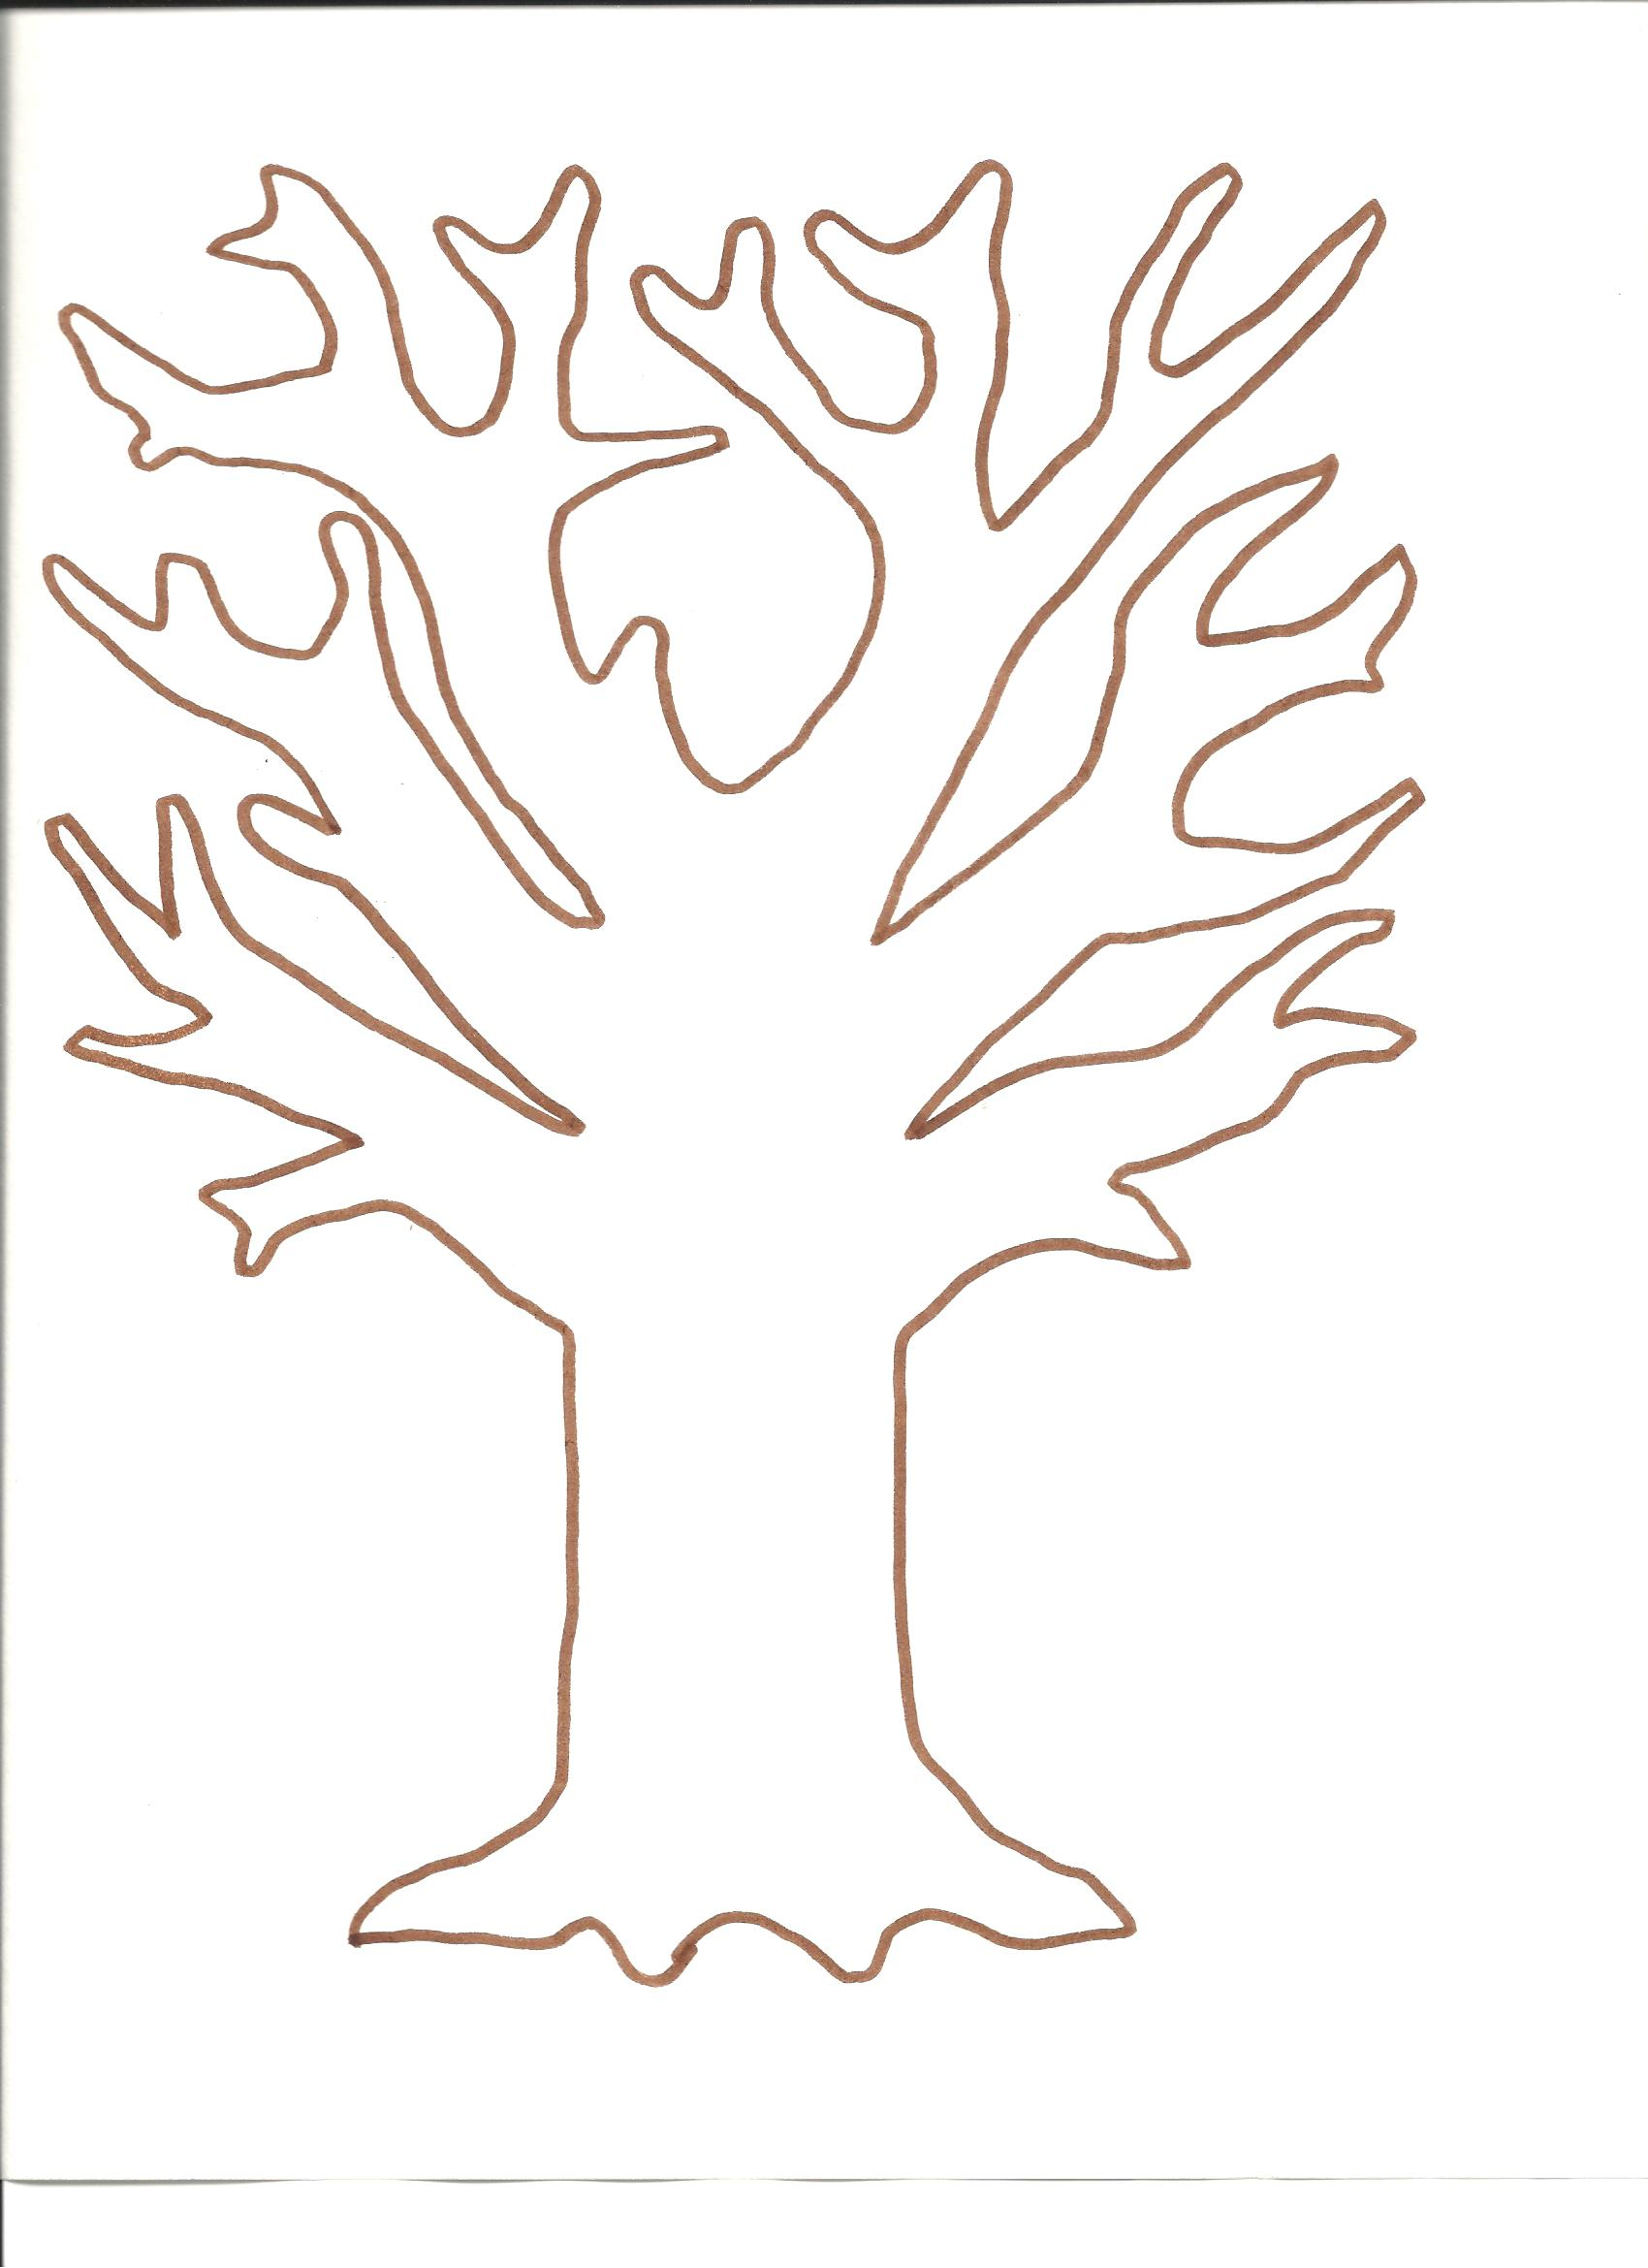 6 Best Images of Fall Tree Printable For Preschool - Paper ...